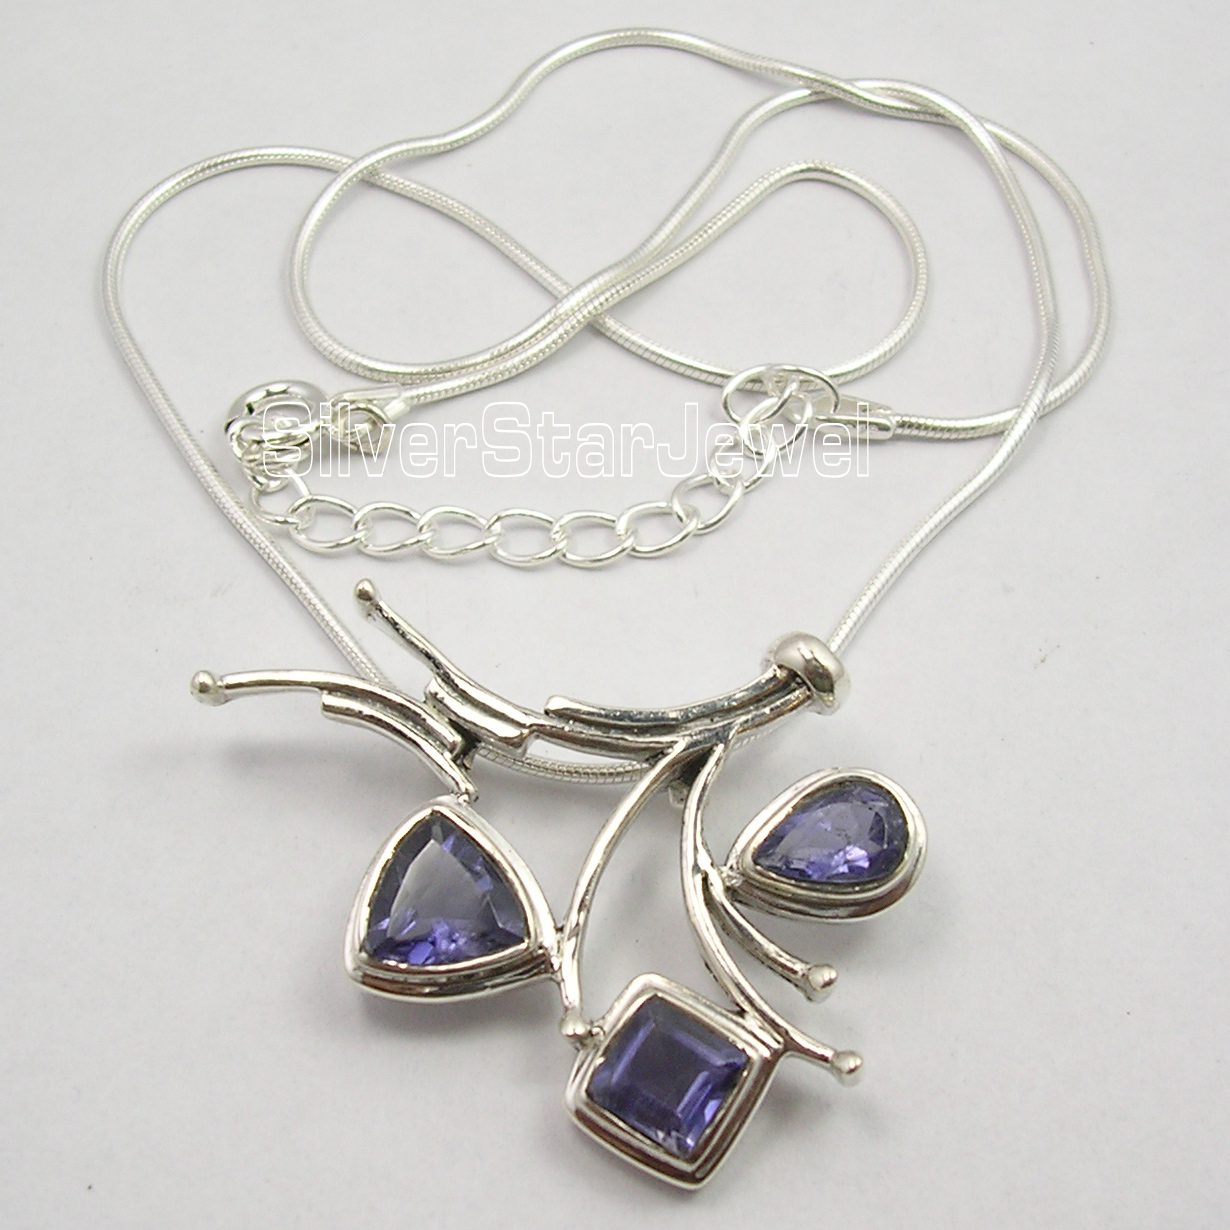 Chanti International . Solid Silver FACETED IOLITE LADIES' EXTRA ORDINARY Necklace 18.5 Inches NEW xishixiu 11 16 inches